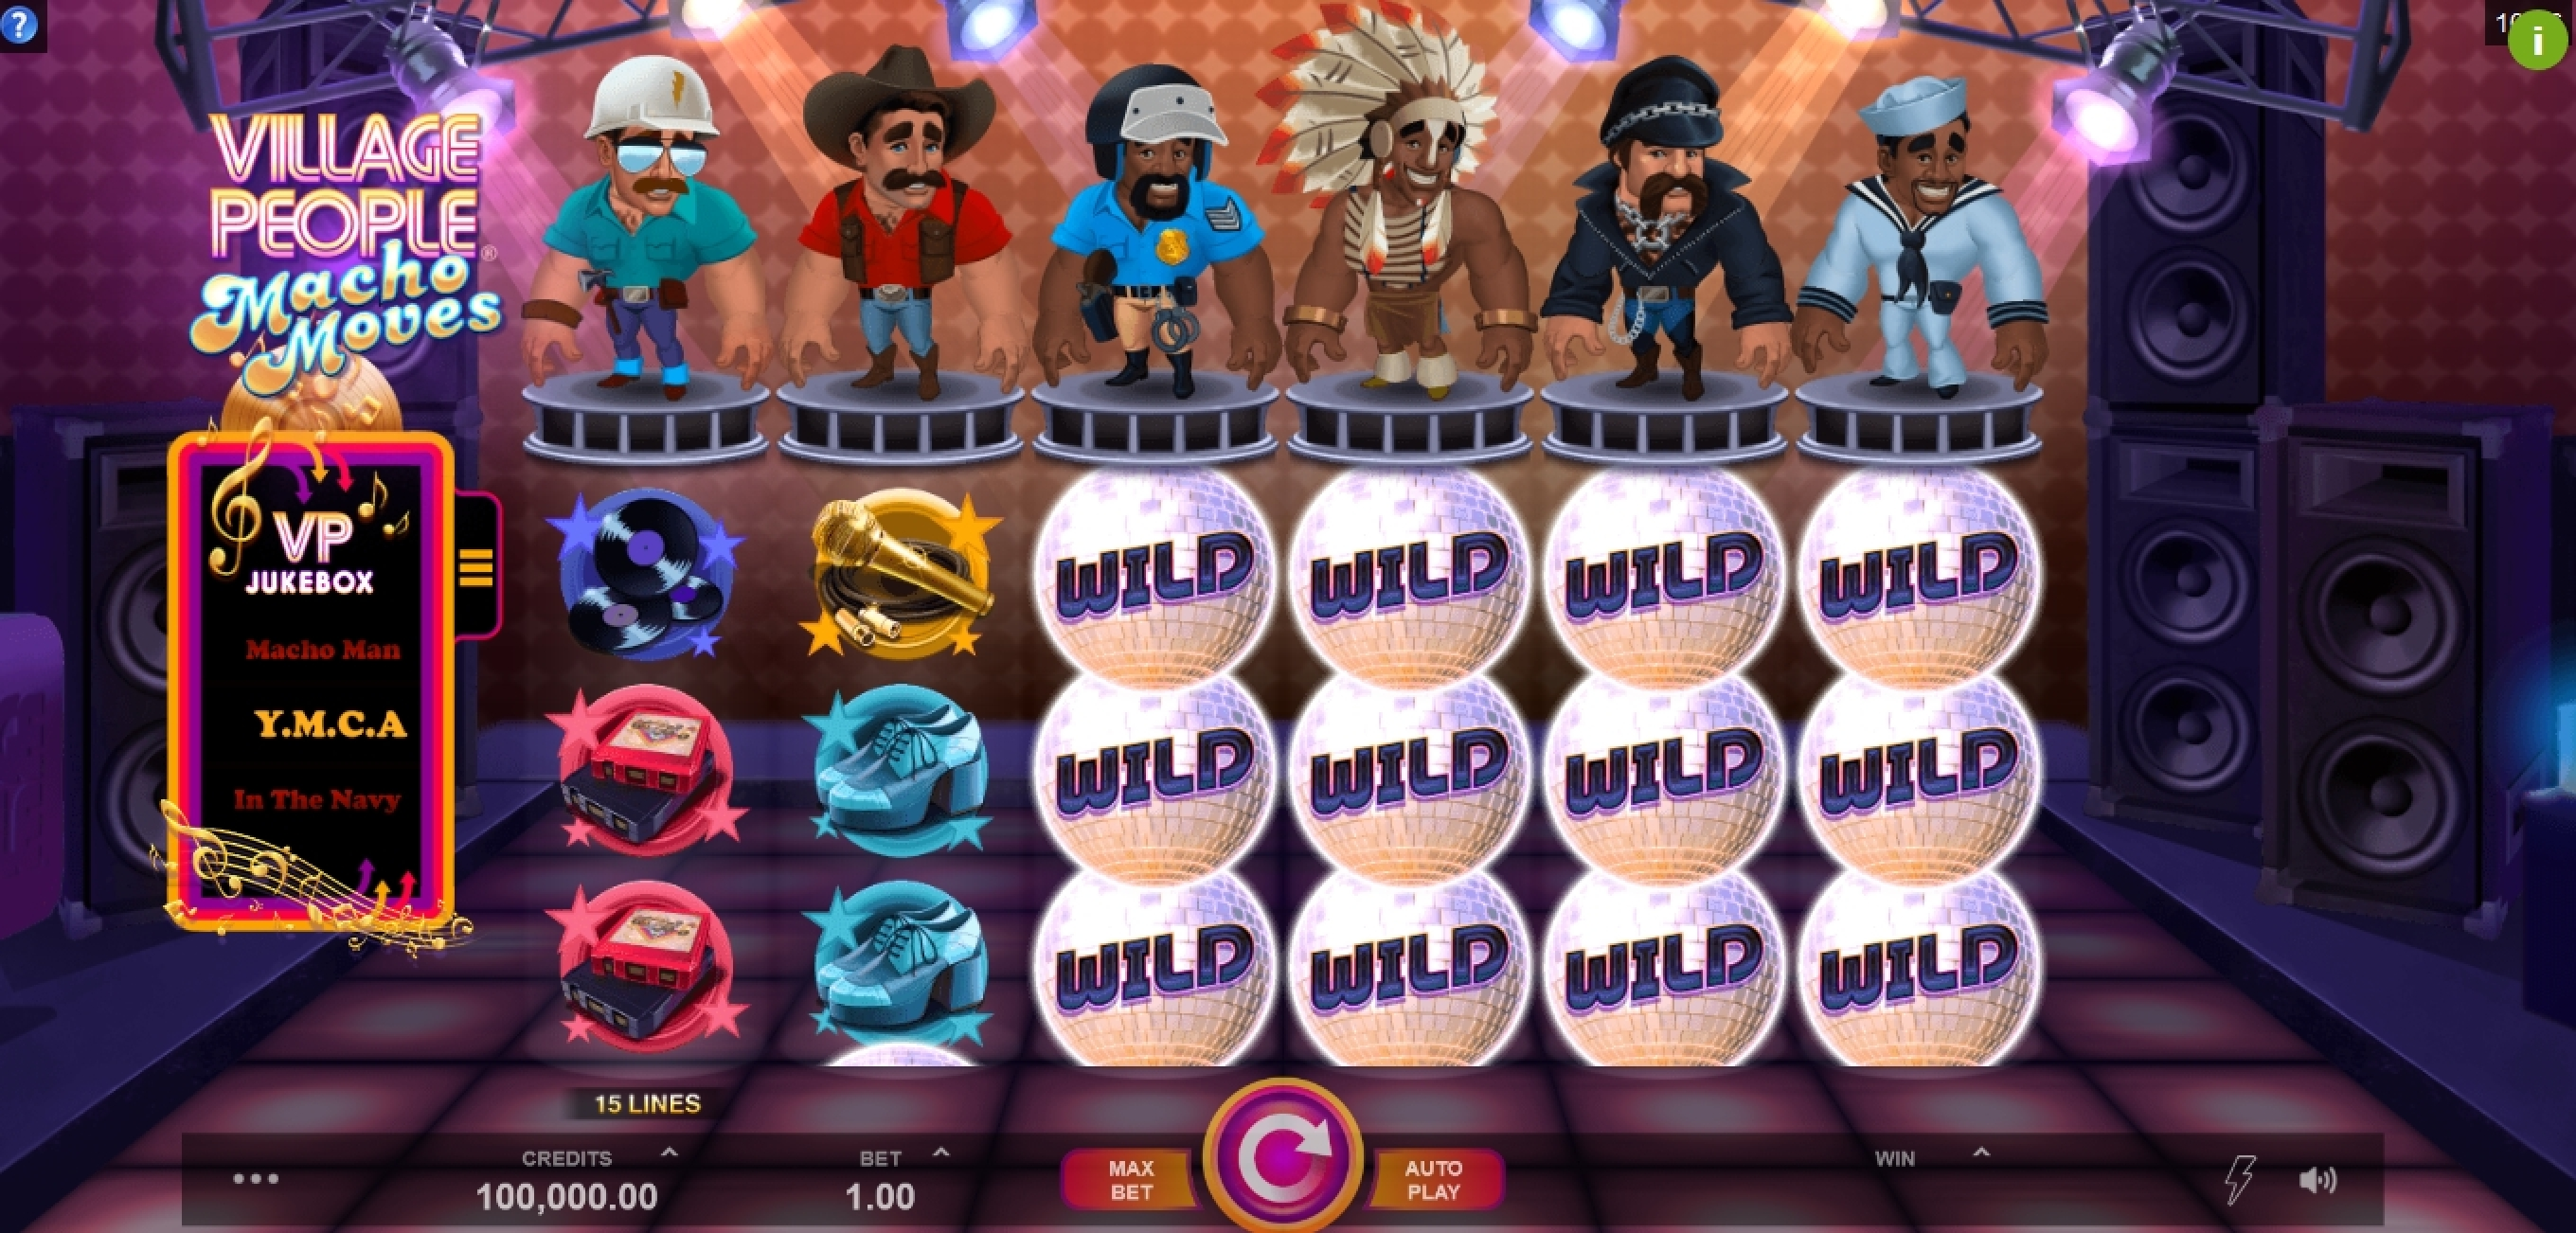 Reels in Village People Macho Moves Slot Game by Fortune Factory Studios